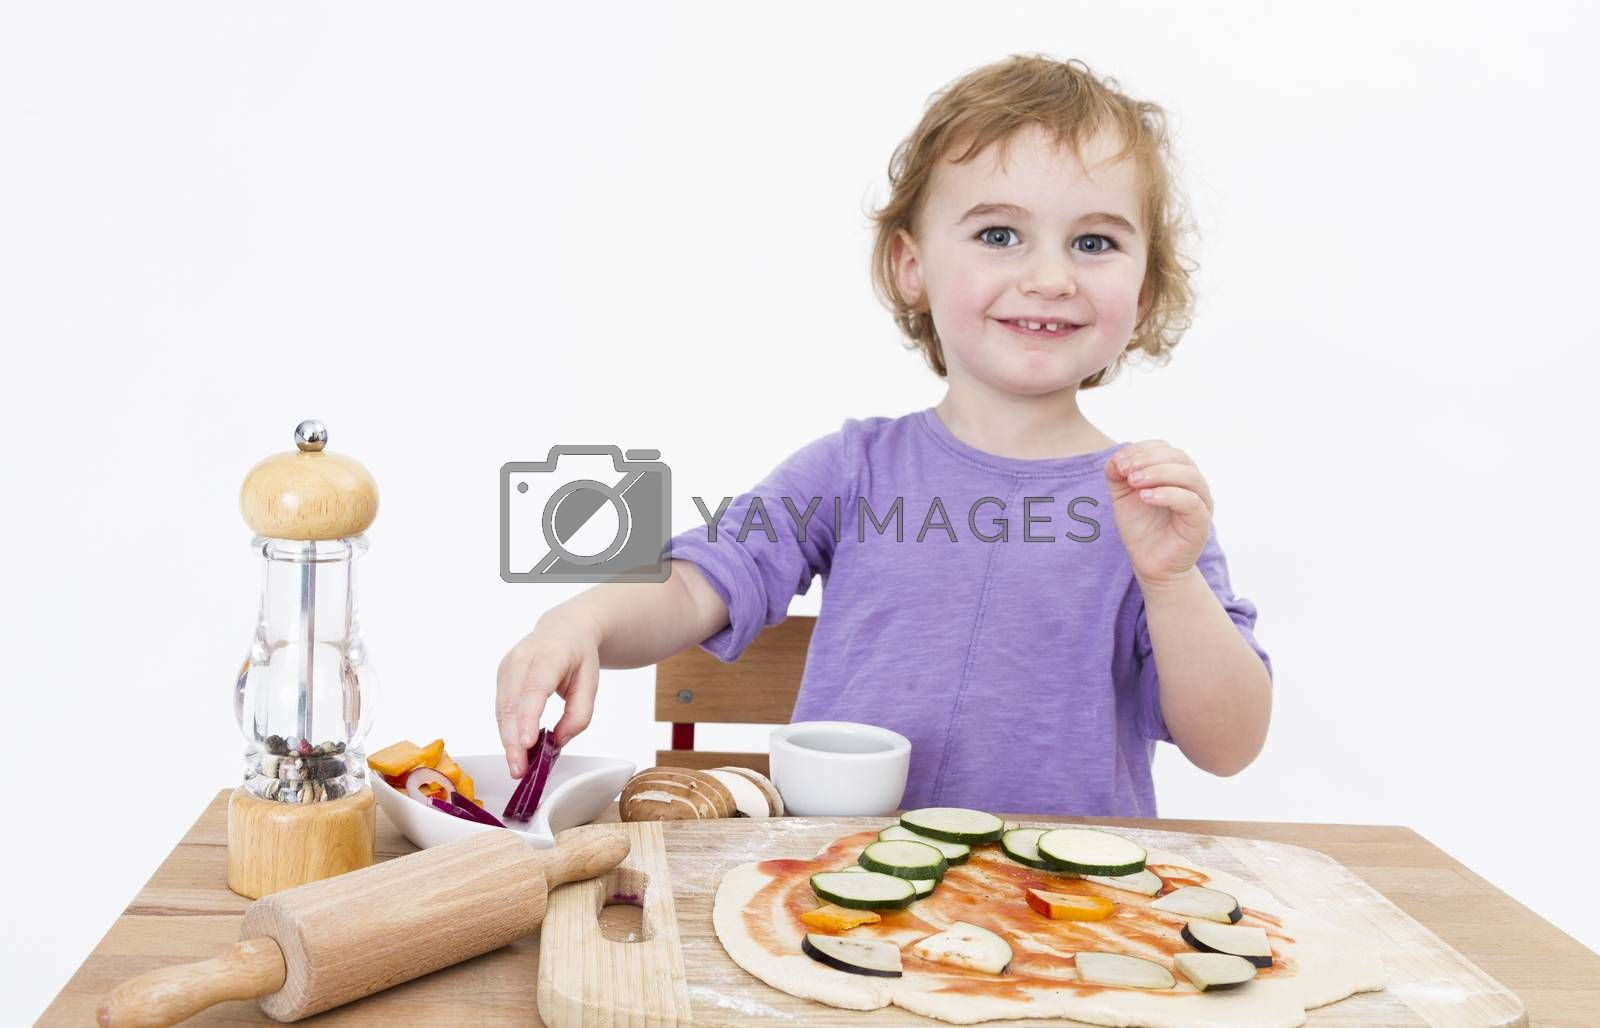 Royalty free image of smiling young girl preparing fresh pizza by gewoldi